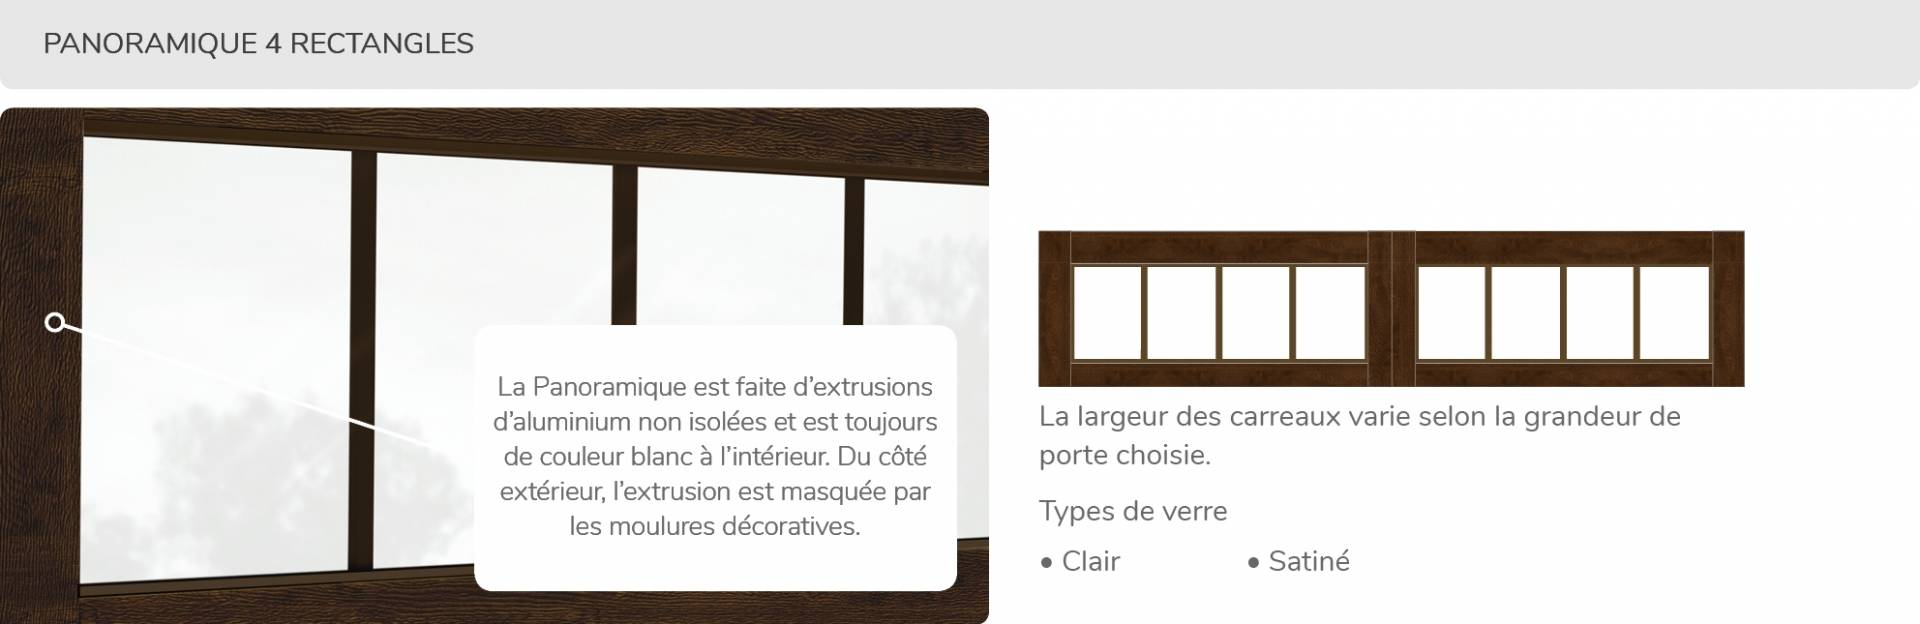 Panoramique 4 rectangles, disponible pour la porte R16